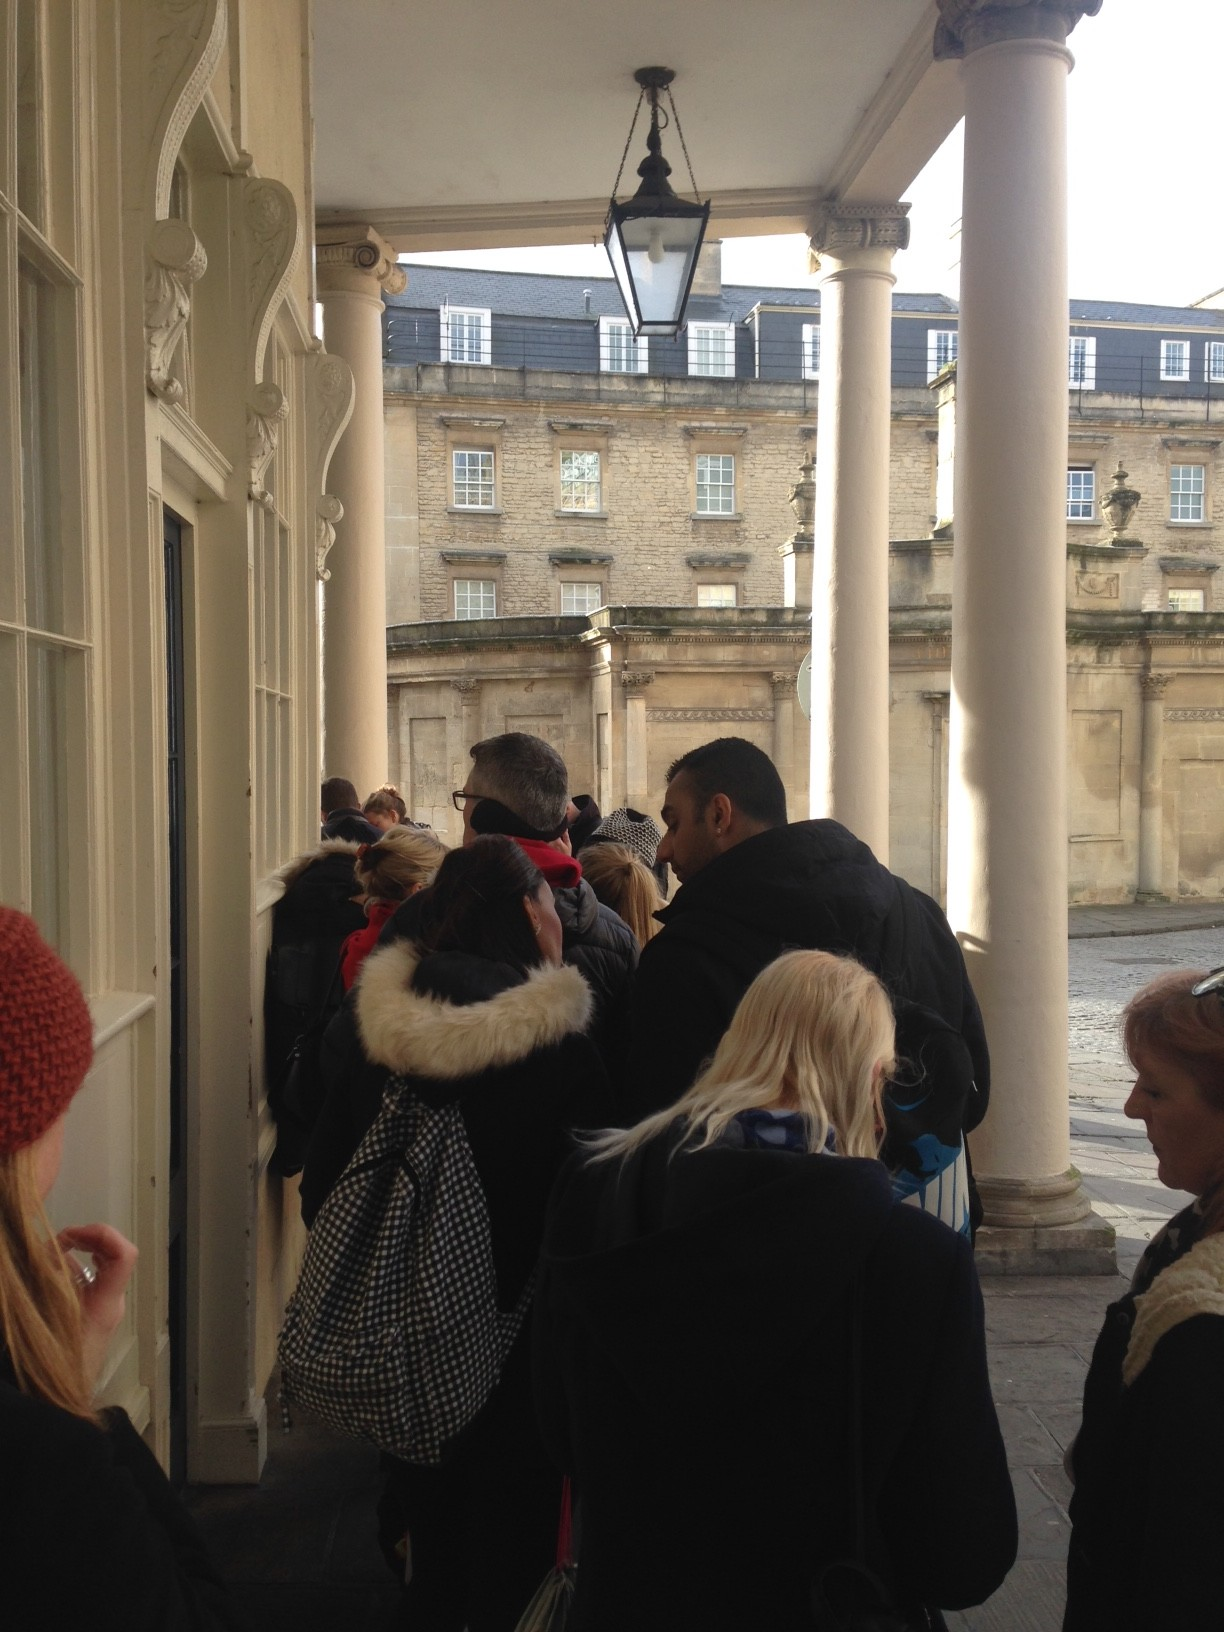 Queuing to get into the New Royal Bath at Thermae Bath Spa